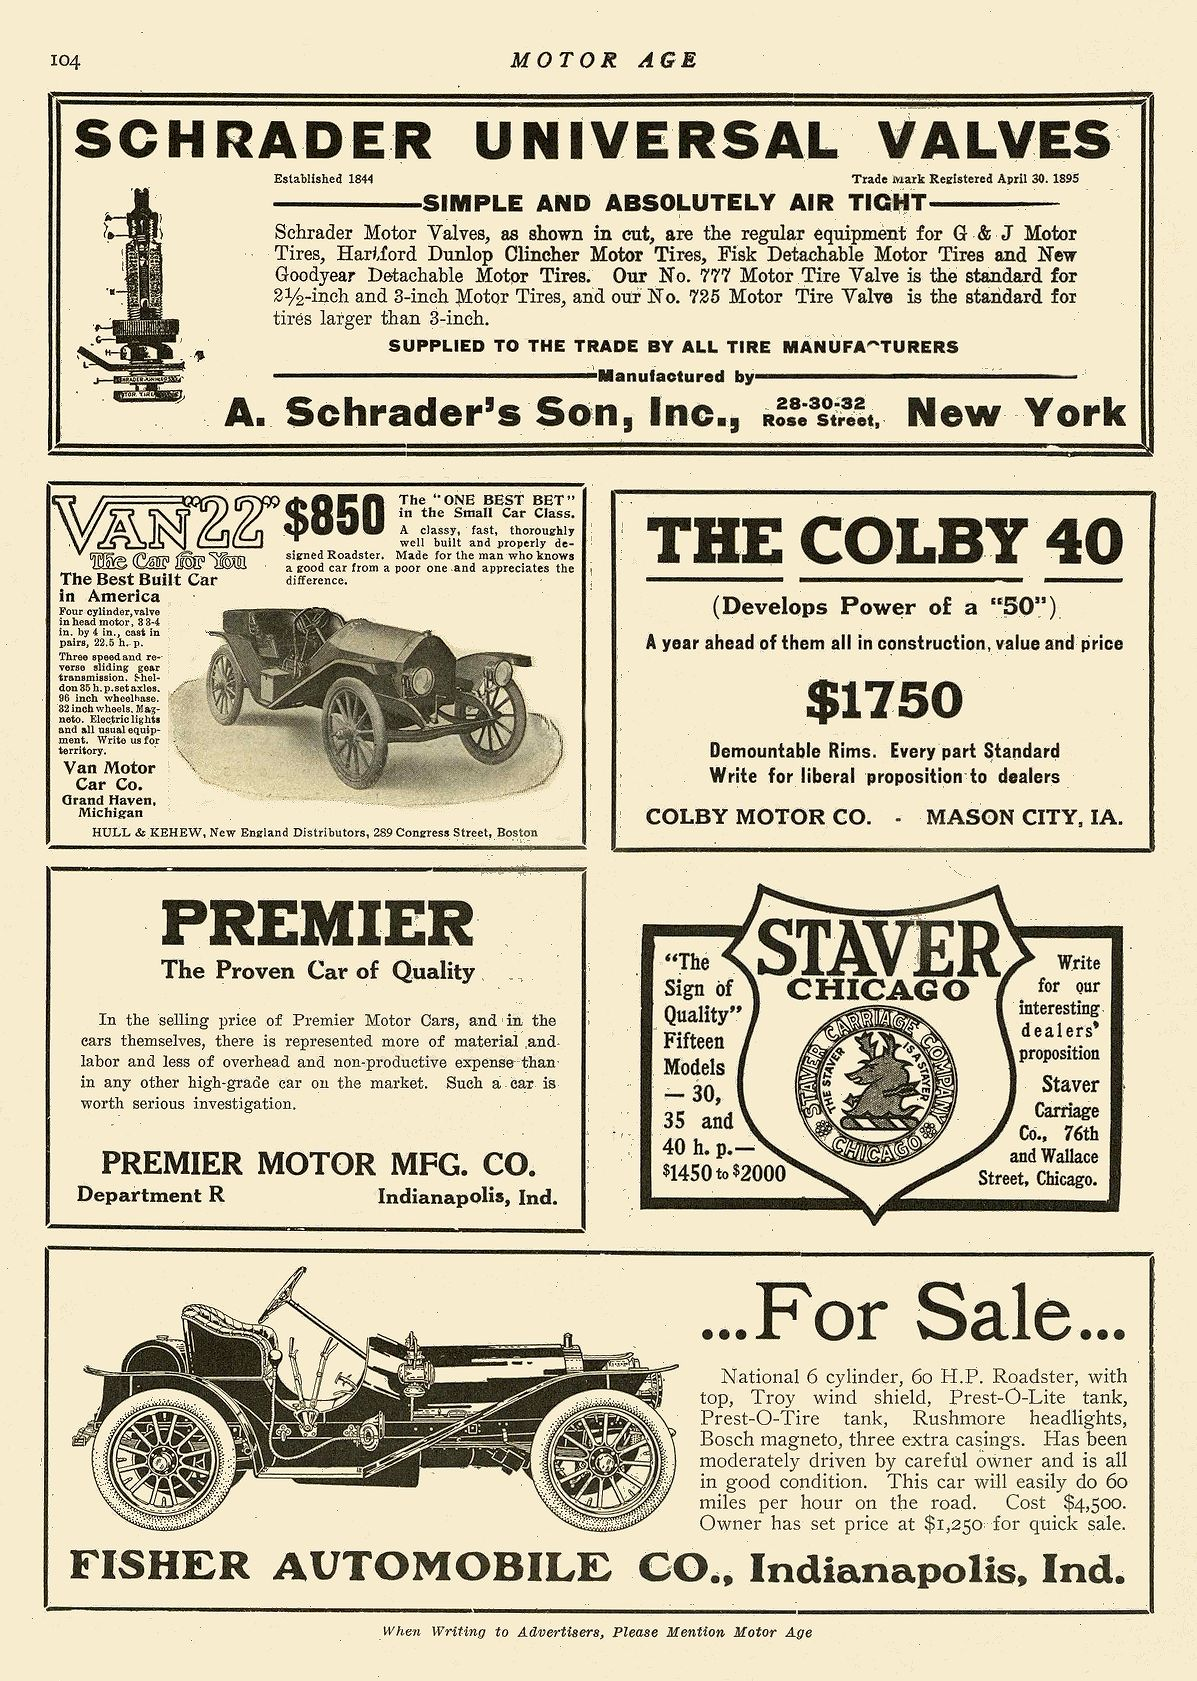 1911 2 23 ca. 1910 NATIONAL …For Sale… 6 cylinder, 60 H.P. Roadster w/ top FISHER AUTOMOBILE CO. Indianapolis, IND MOTOR AGE February 23, 1911 8.25″x11.75″ page 104